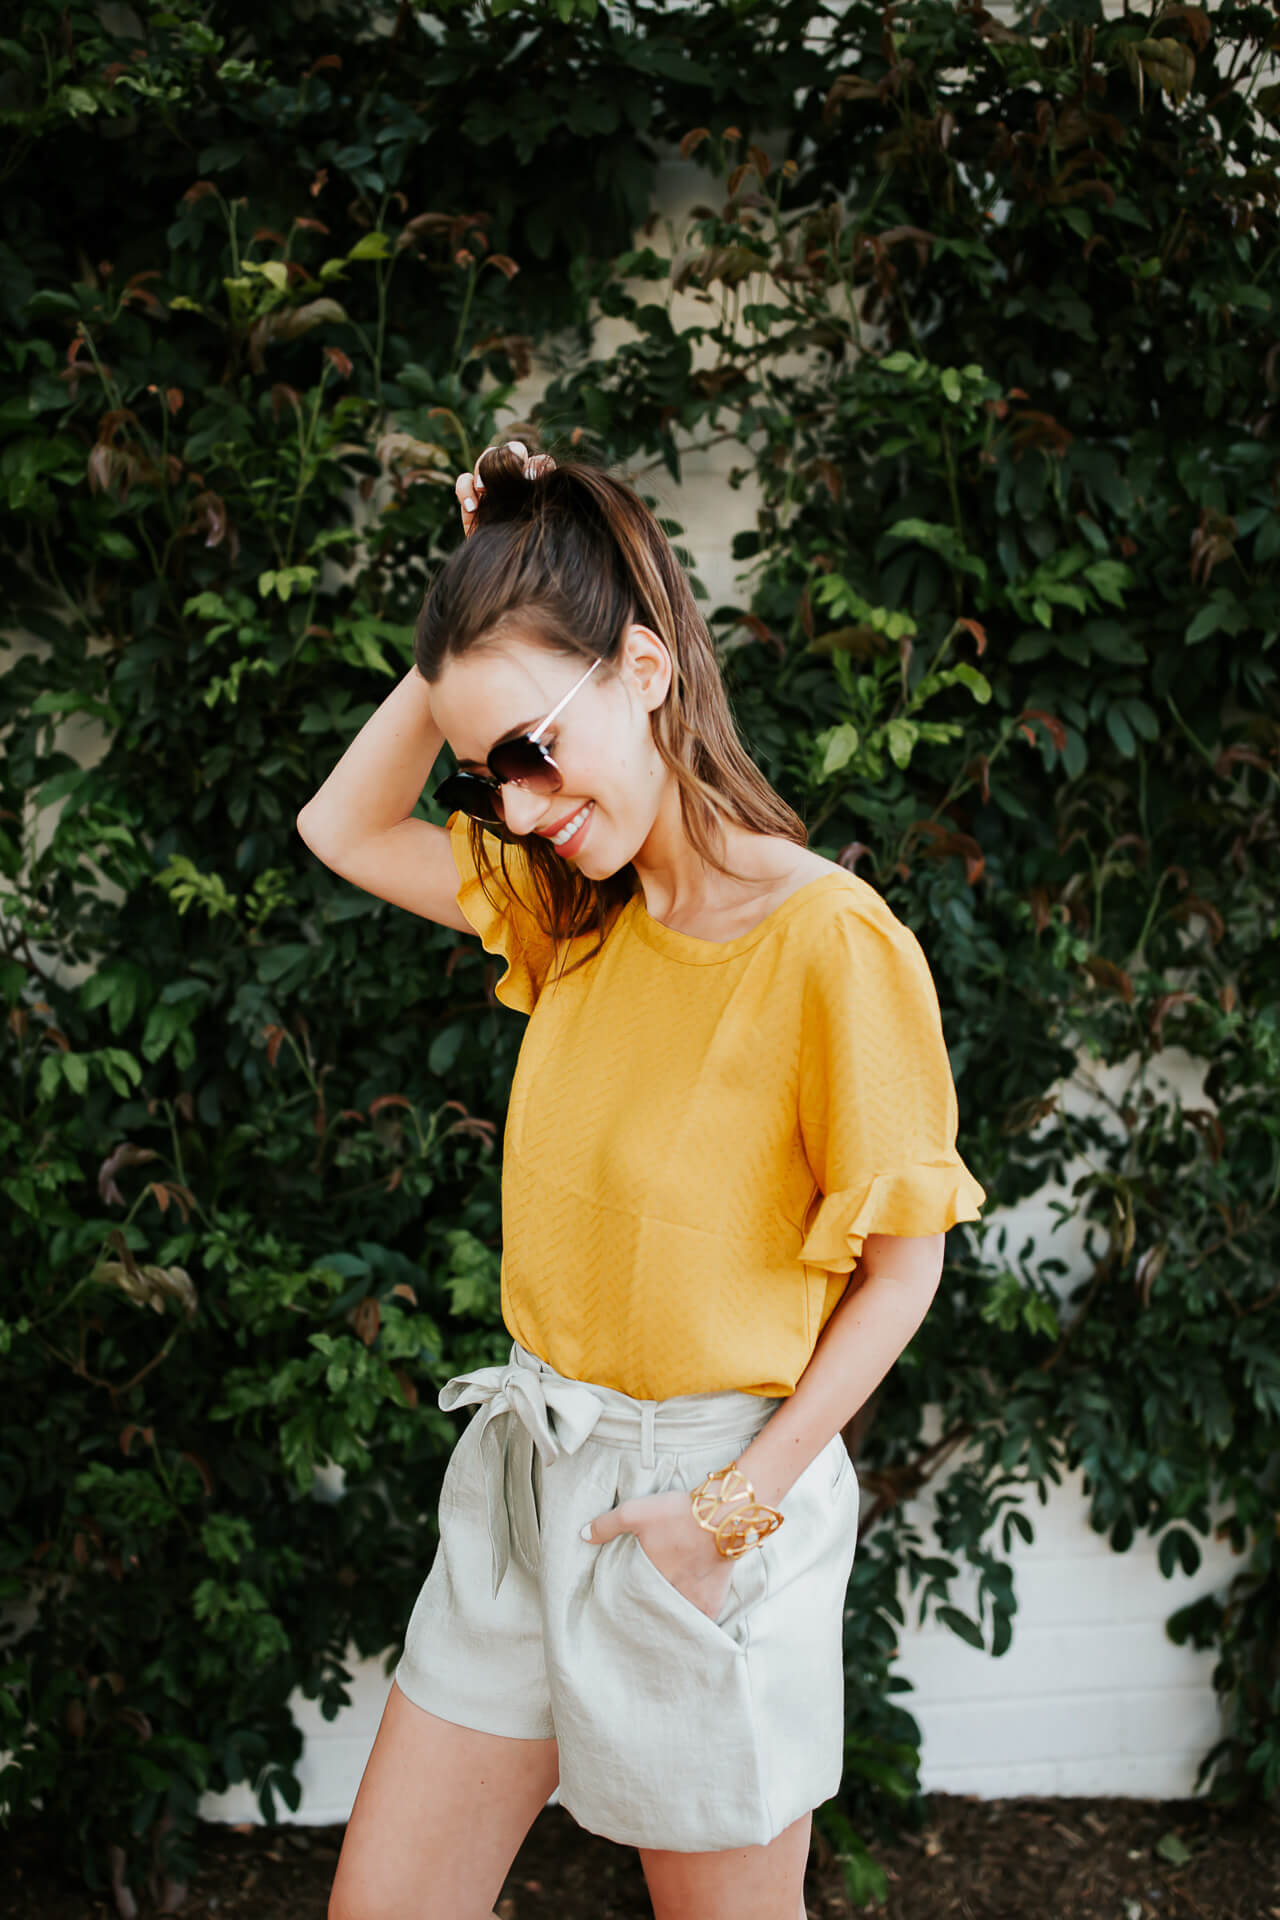 cute shorts outfit for spring - M Loves M Los Angeles Fashion Blogger @marmar